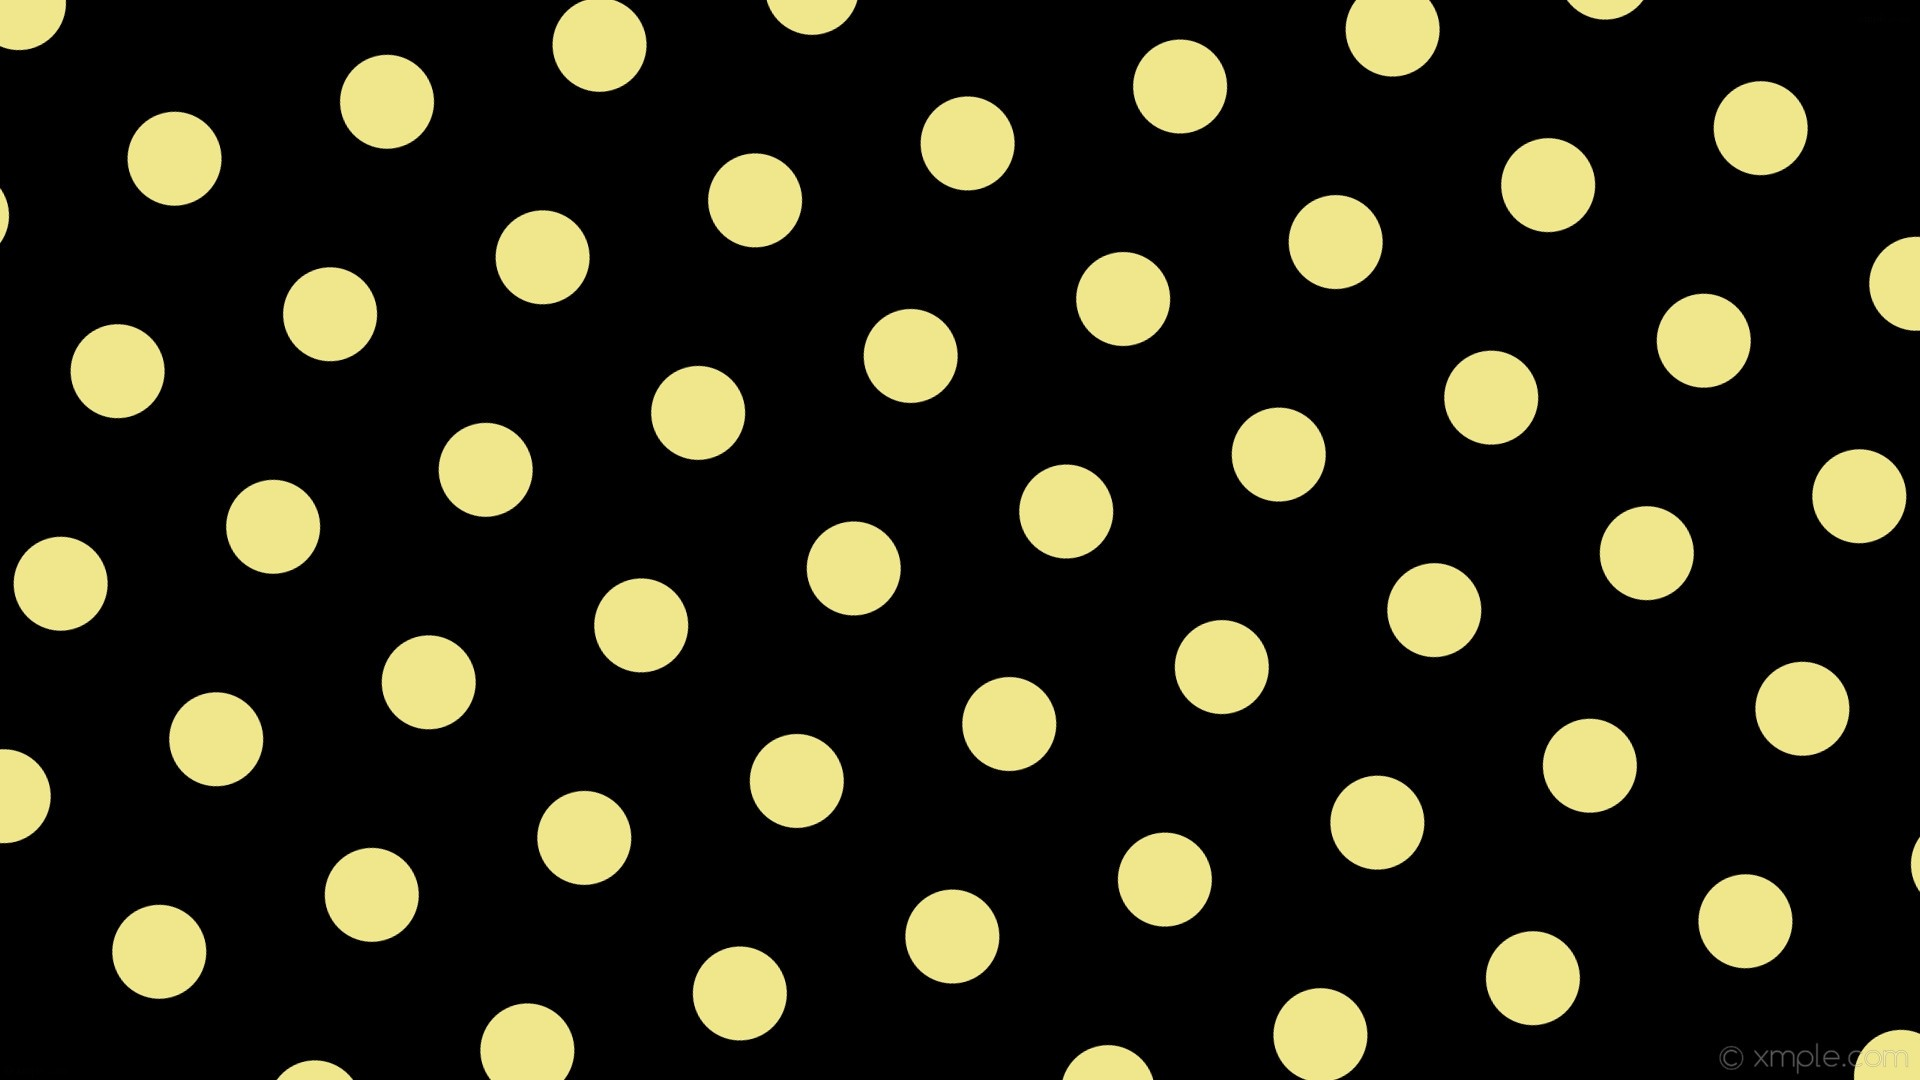 Polka Dot Full HD Wallpaper